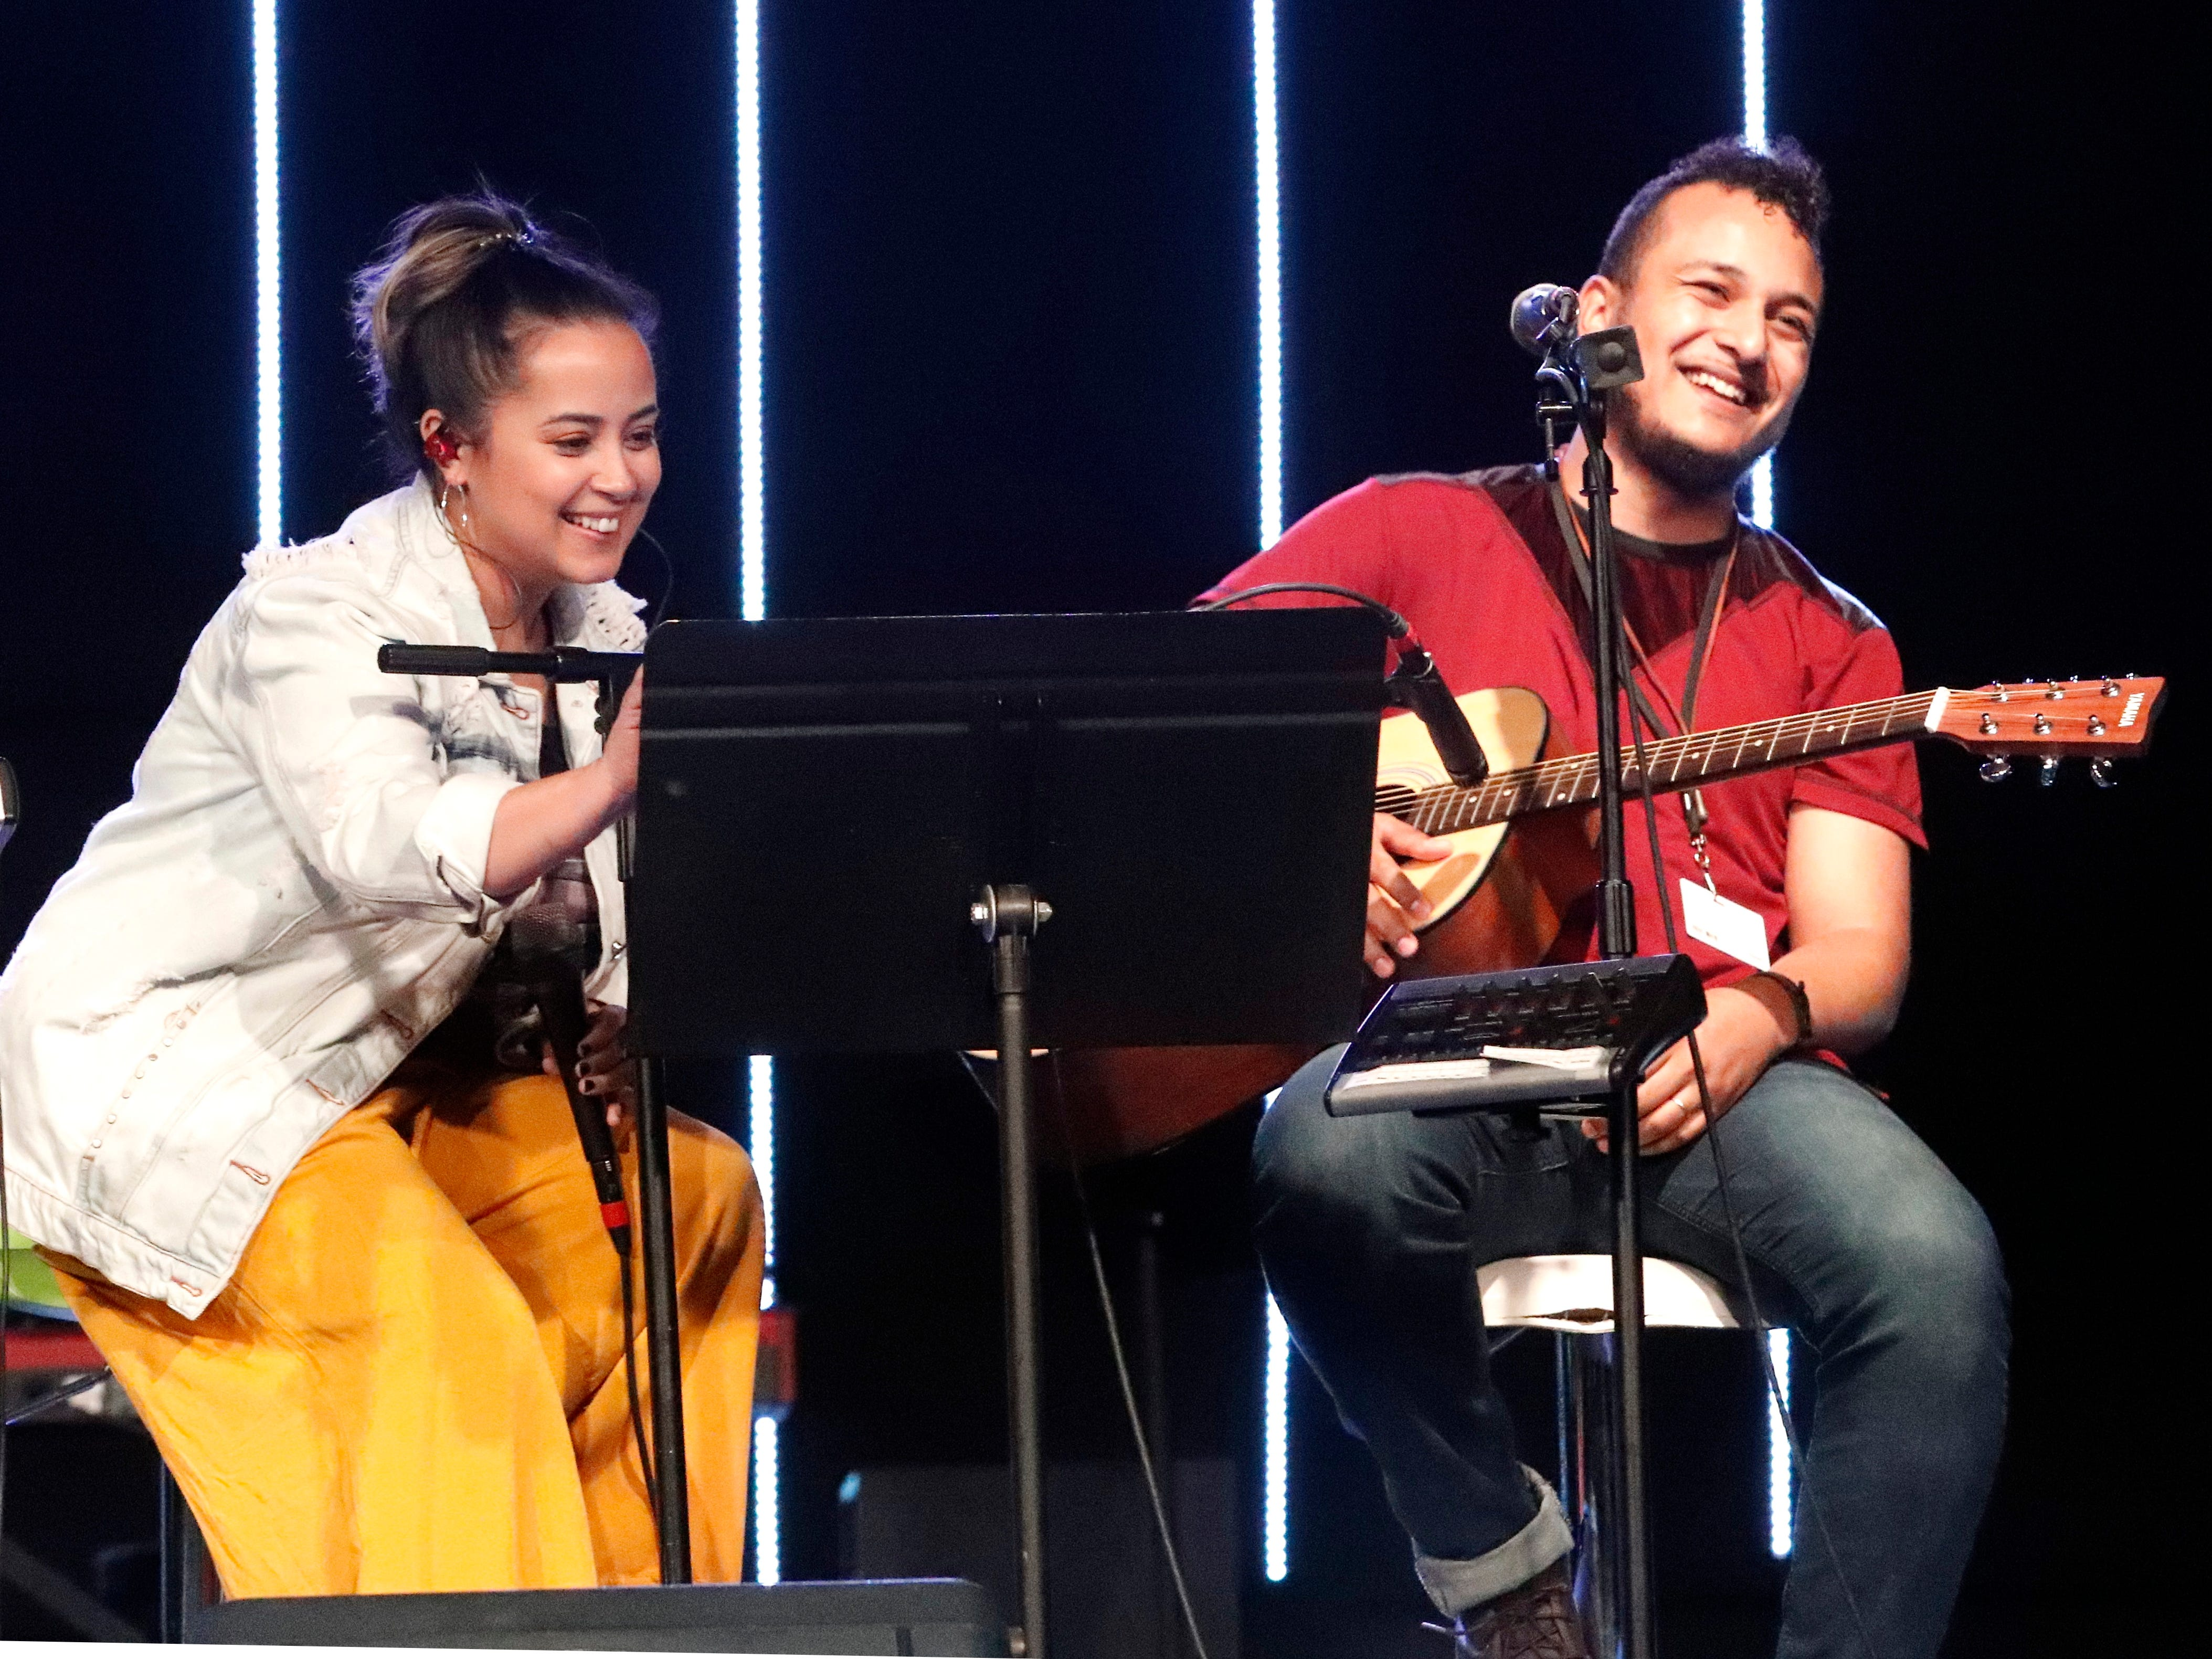 International students from Bethel Church's School of Supernatural Ministry present the Concert of the Nations on Thursday, March 14, 2019, in Redding. Pictured are Kesia Rut Barriga Vieira Vidal and William Augusto Vidal da Silva (Brazil).